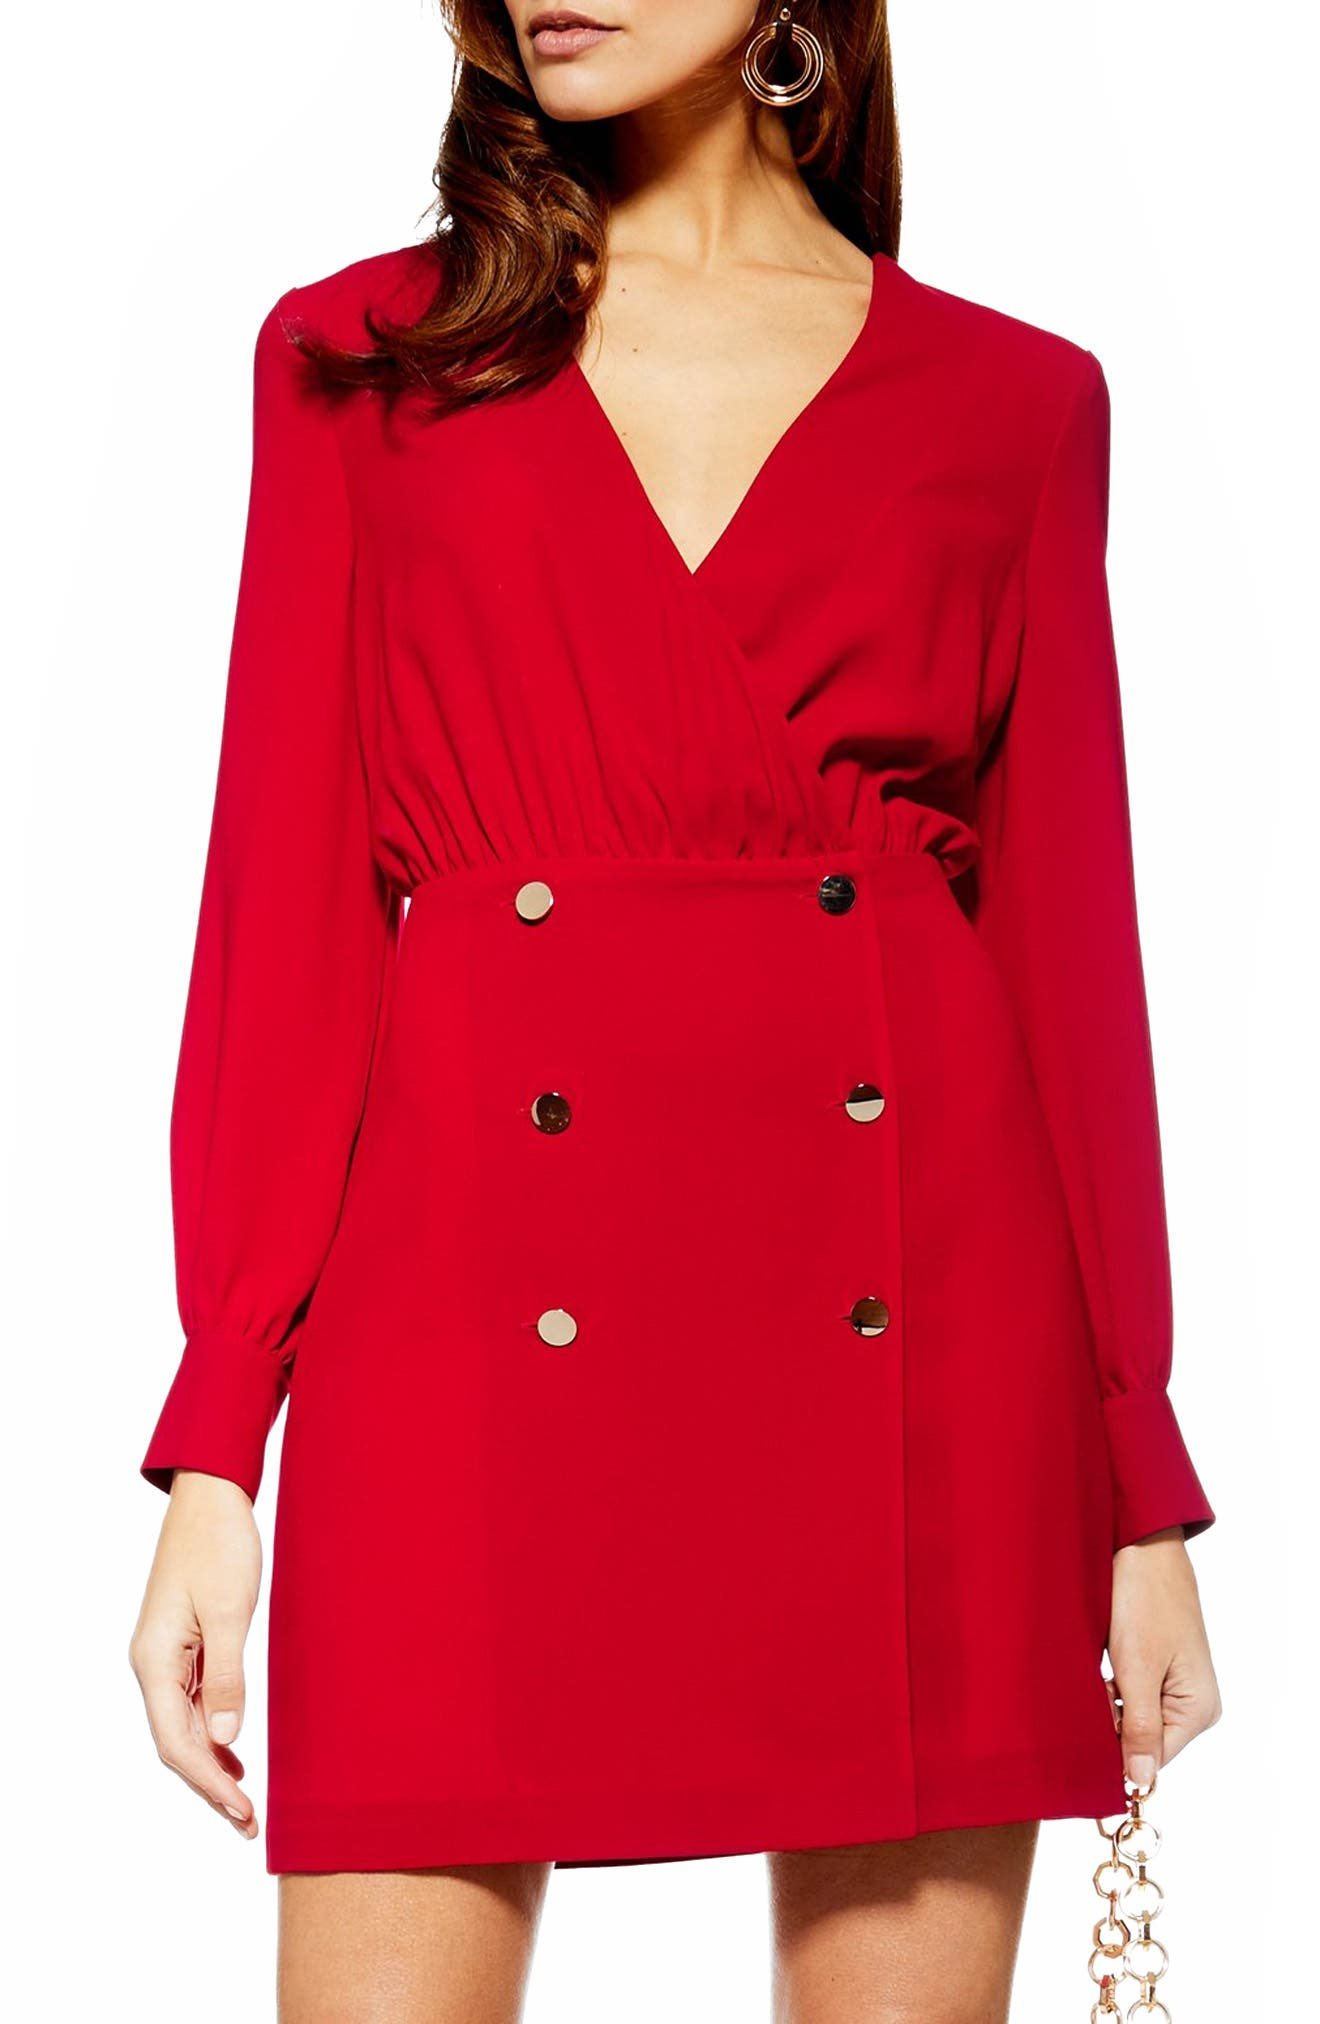 Topshop Double Breasted Blazer Minidress, US (fits like 0) - Red